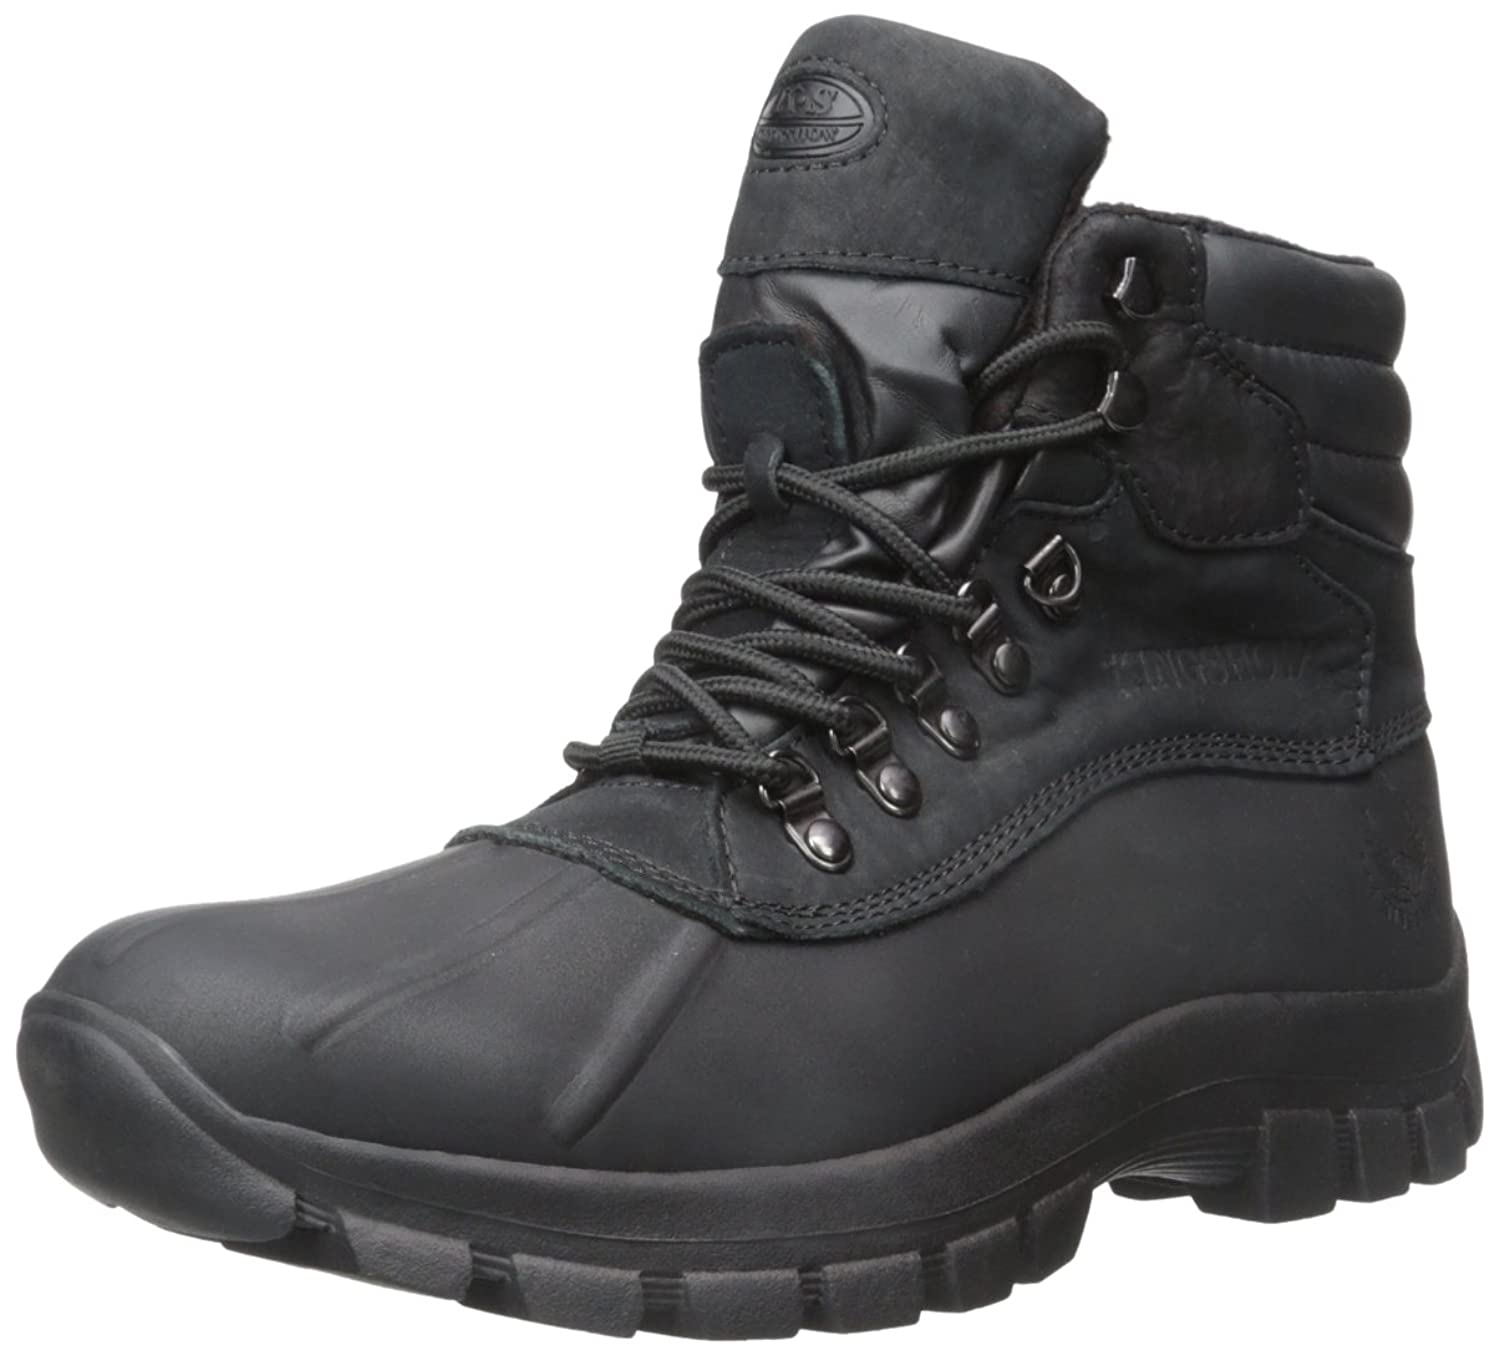 Amazon Best Sellers: Best Men's Snow Boots